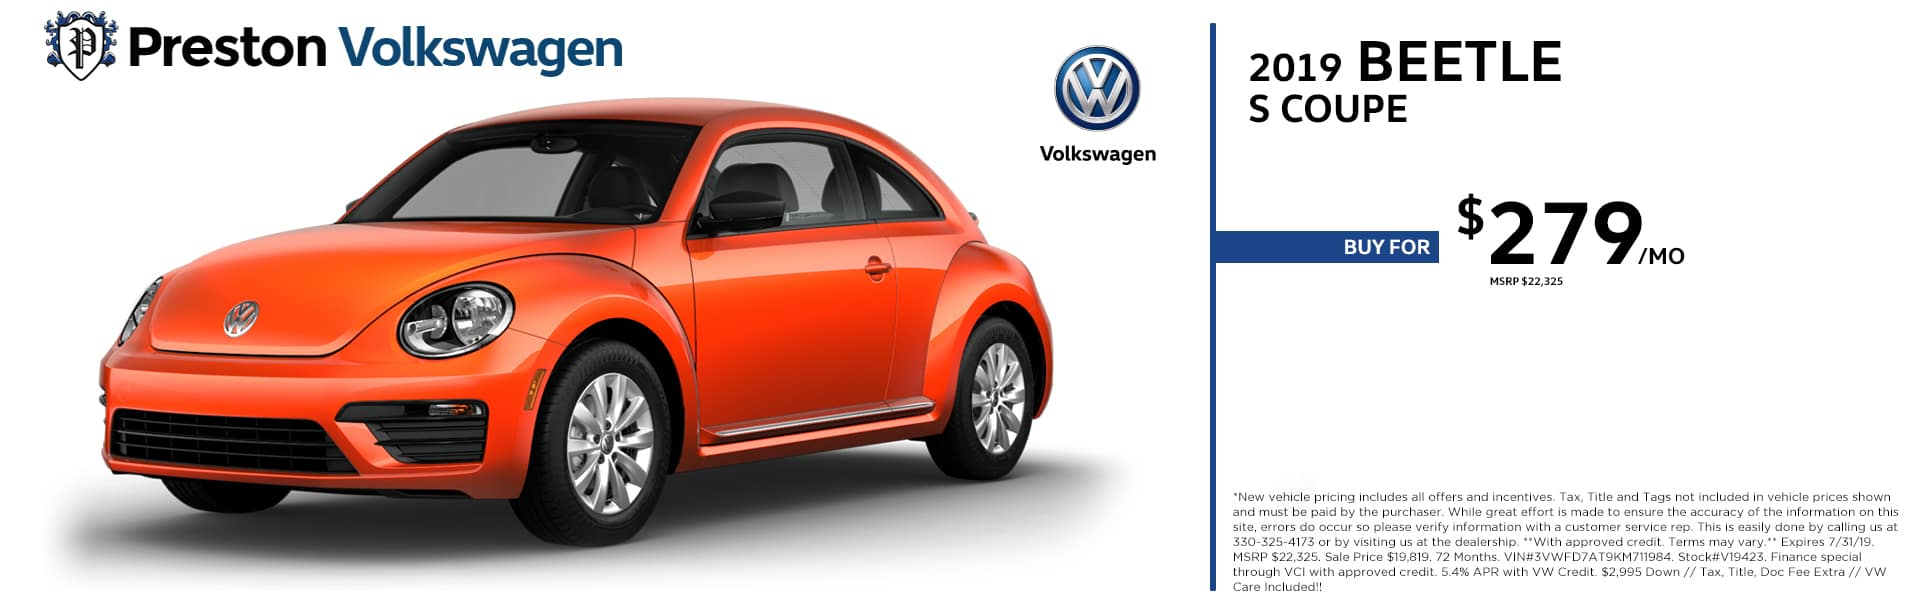 July special on the 2019 Volkswagen Beetle